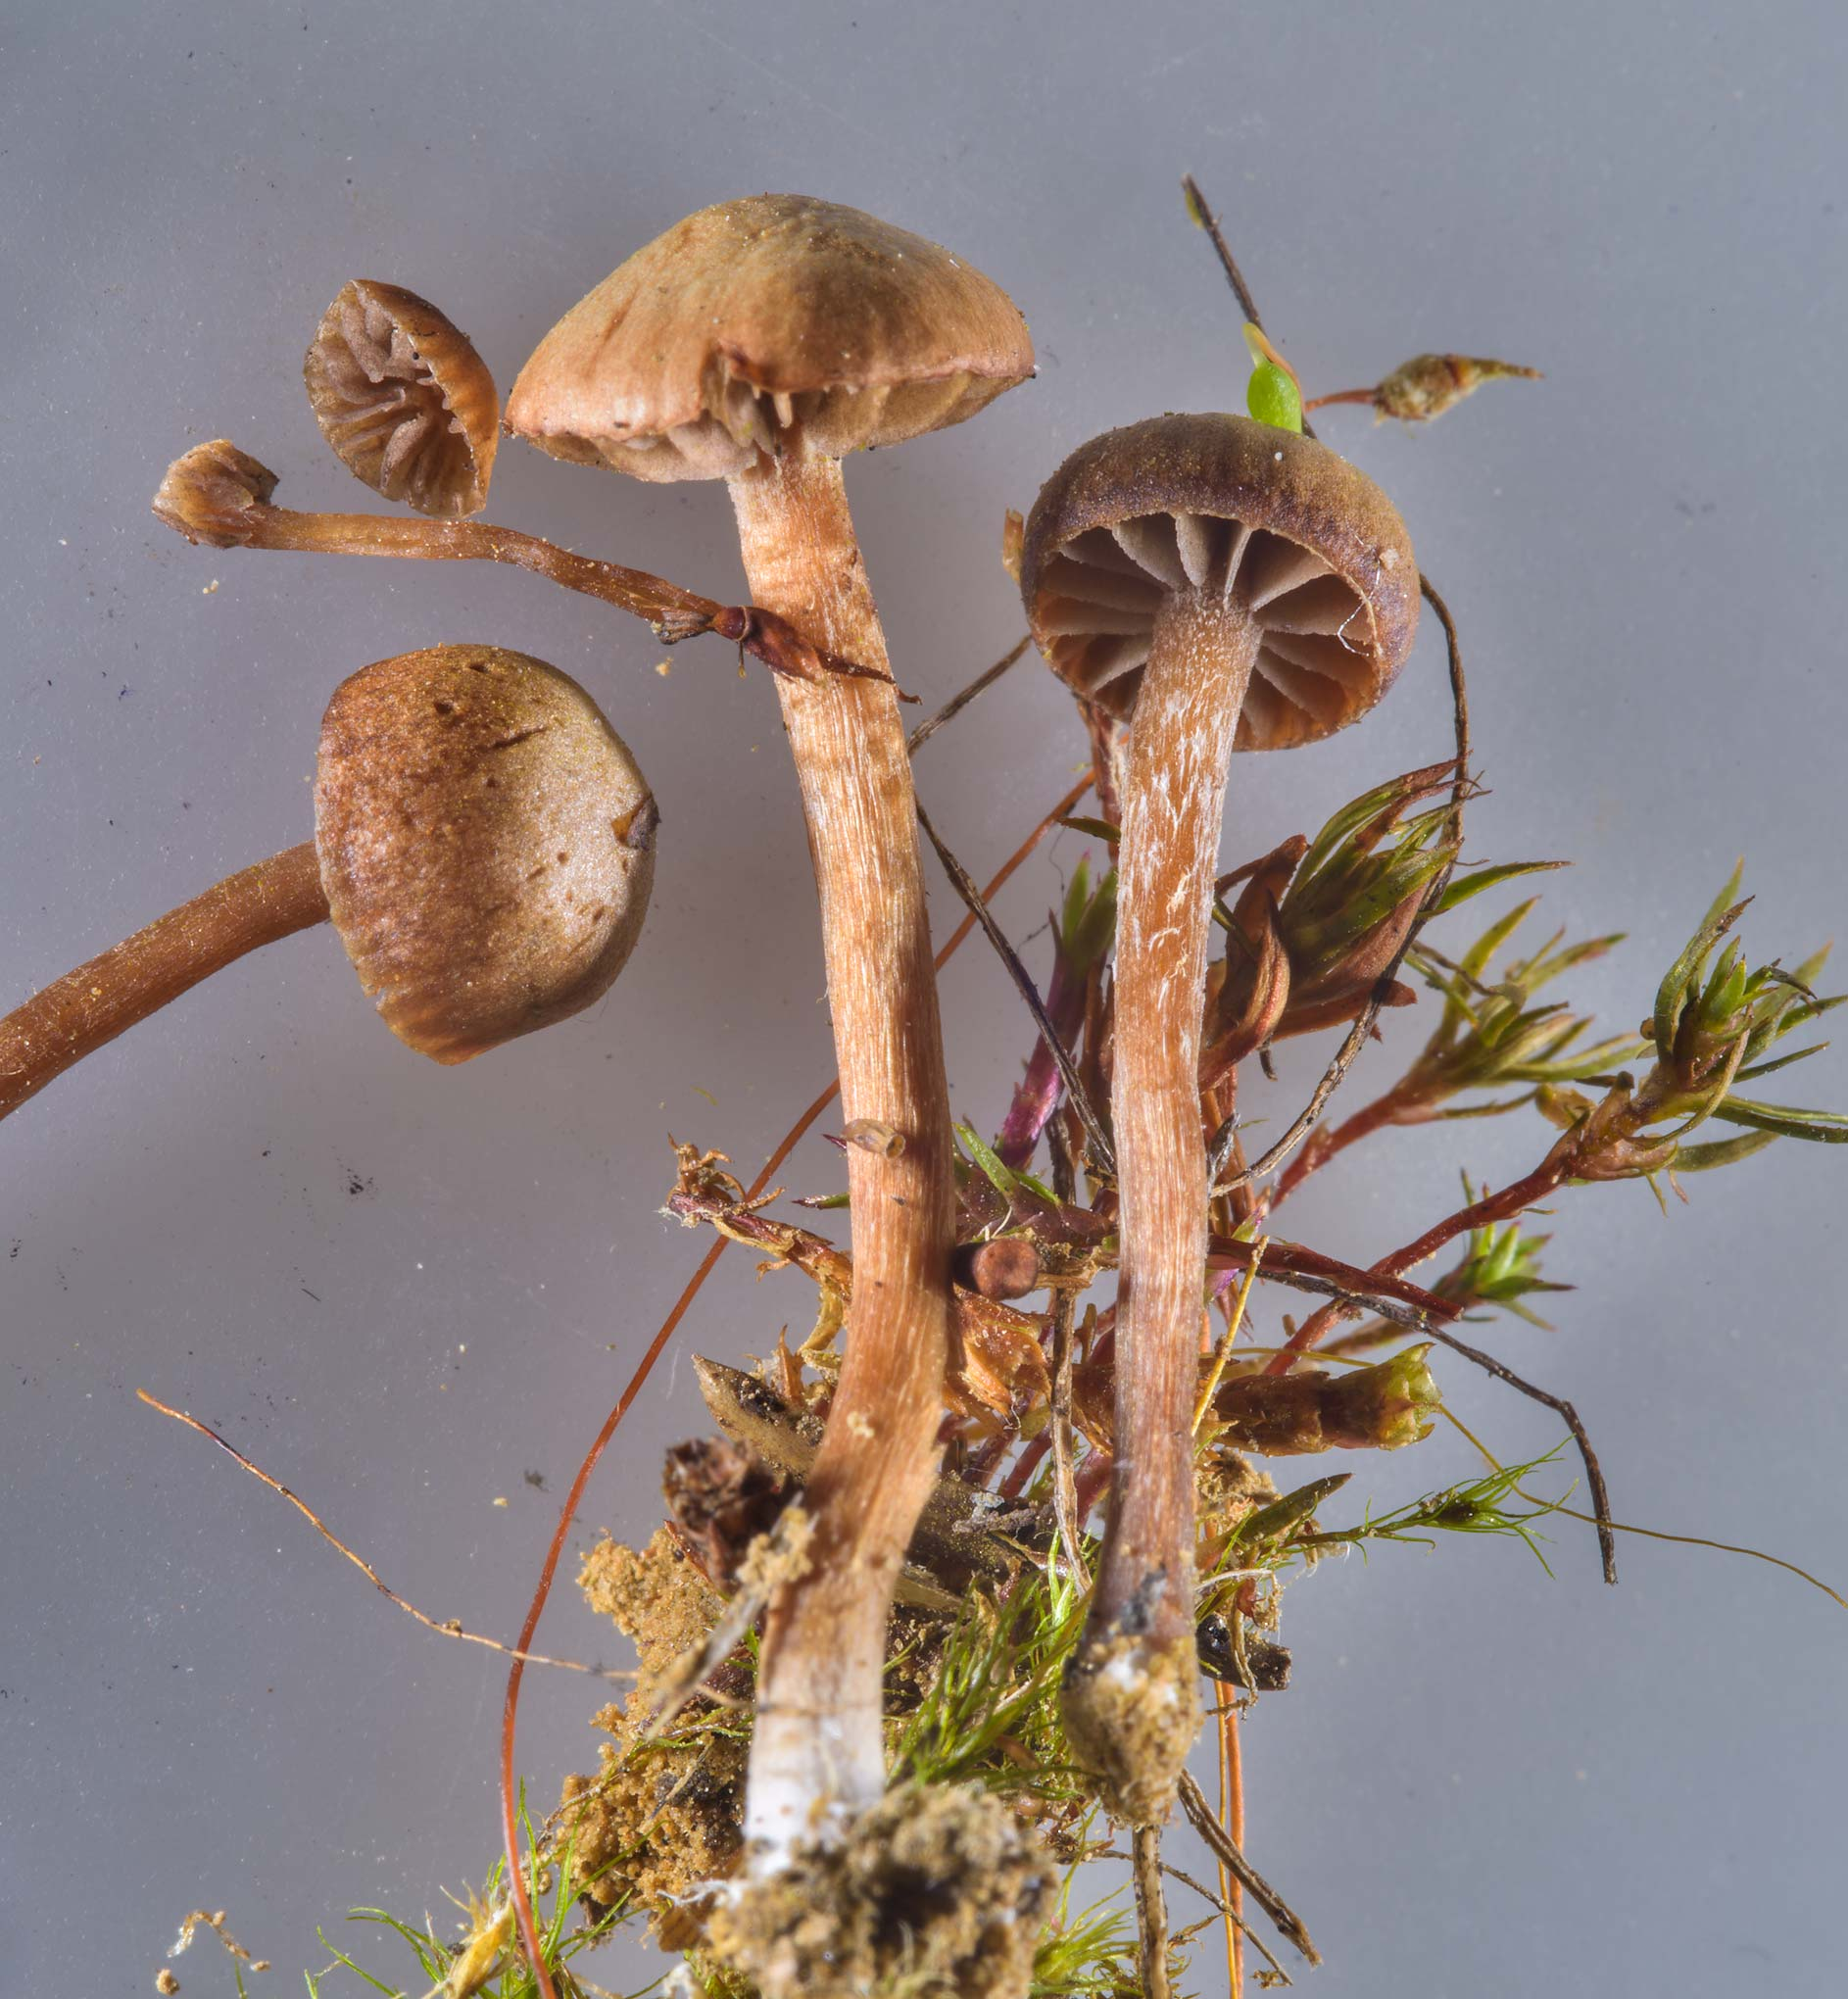 Mountain moss Psilocybe mushrooms (Psilocybe...miles north from St.Petersburg. Russia